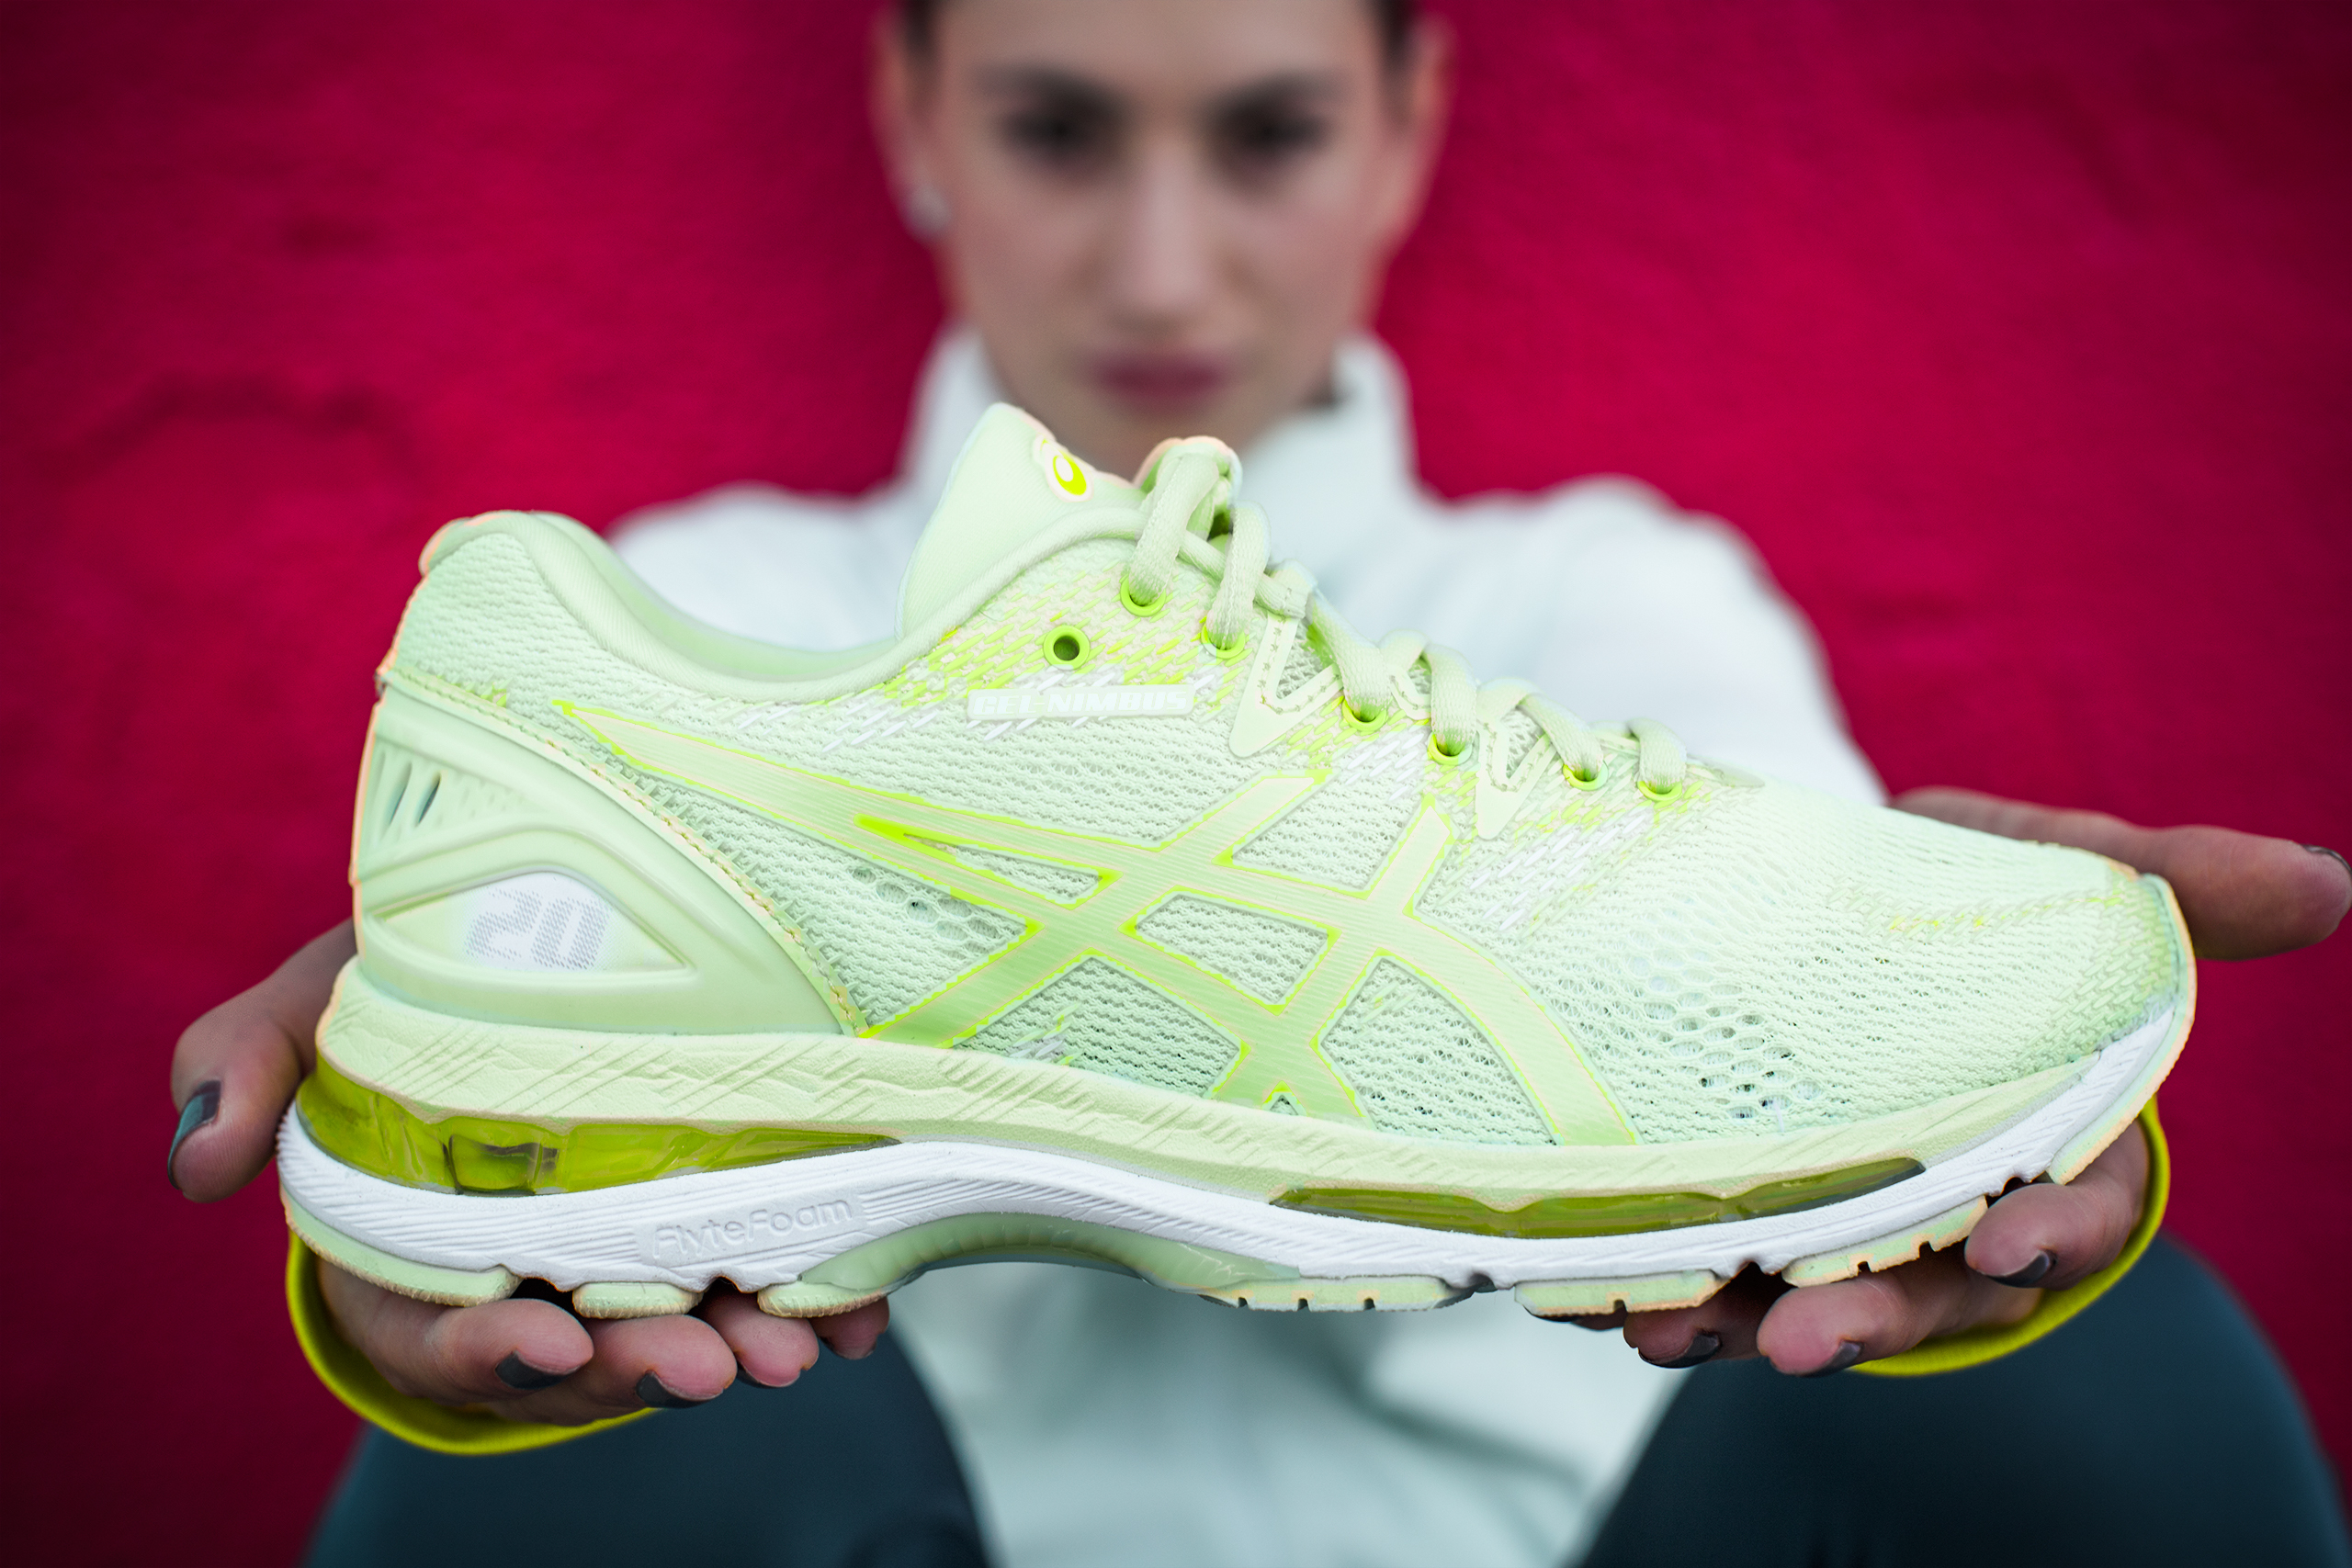 Escoba Marinero Especial  ASICS CELEBRATES THE 20TH ITERATION OF THE GEL-NIMBUS™ SERIES, ITS BEST  LONG-DISTANCE RUNNING SHOE THE RUN IS IN ALL OF US: THE NEW GEL-NIMBUS™ 20  | ASICS Global - The Official Corporate